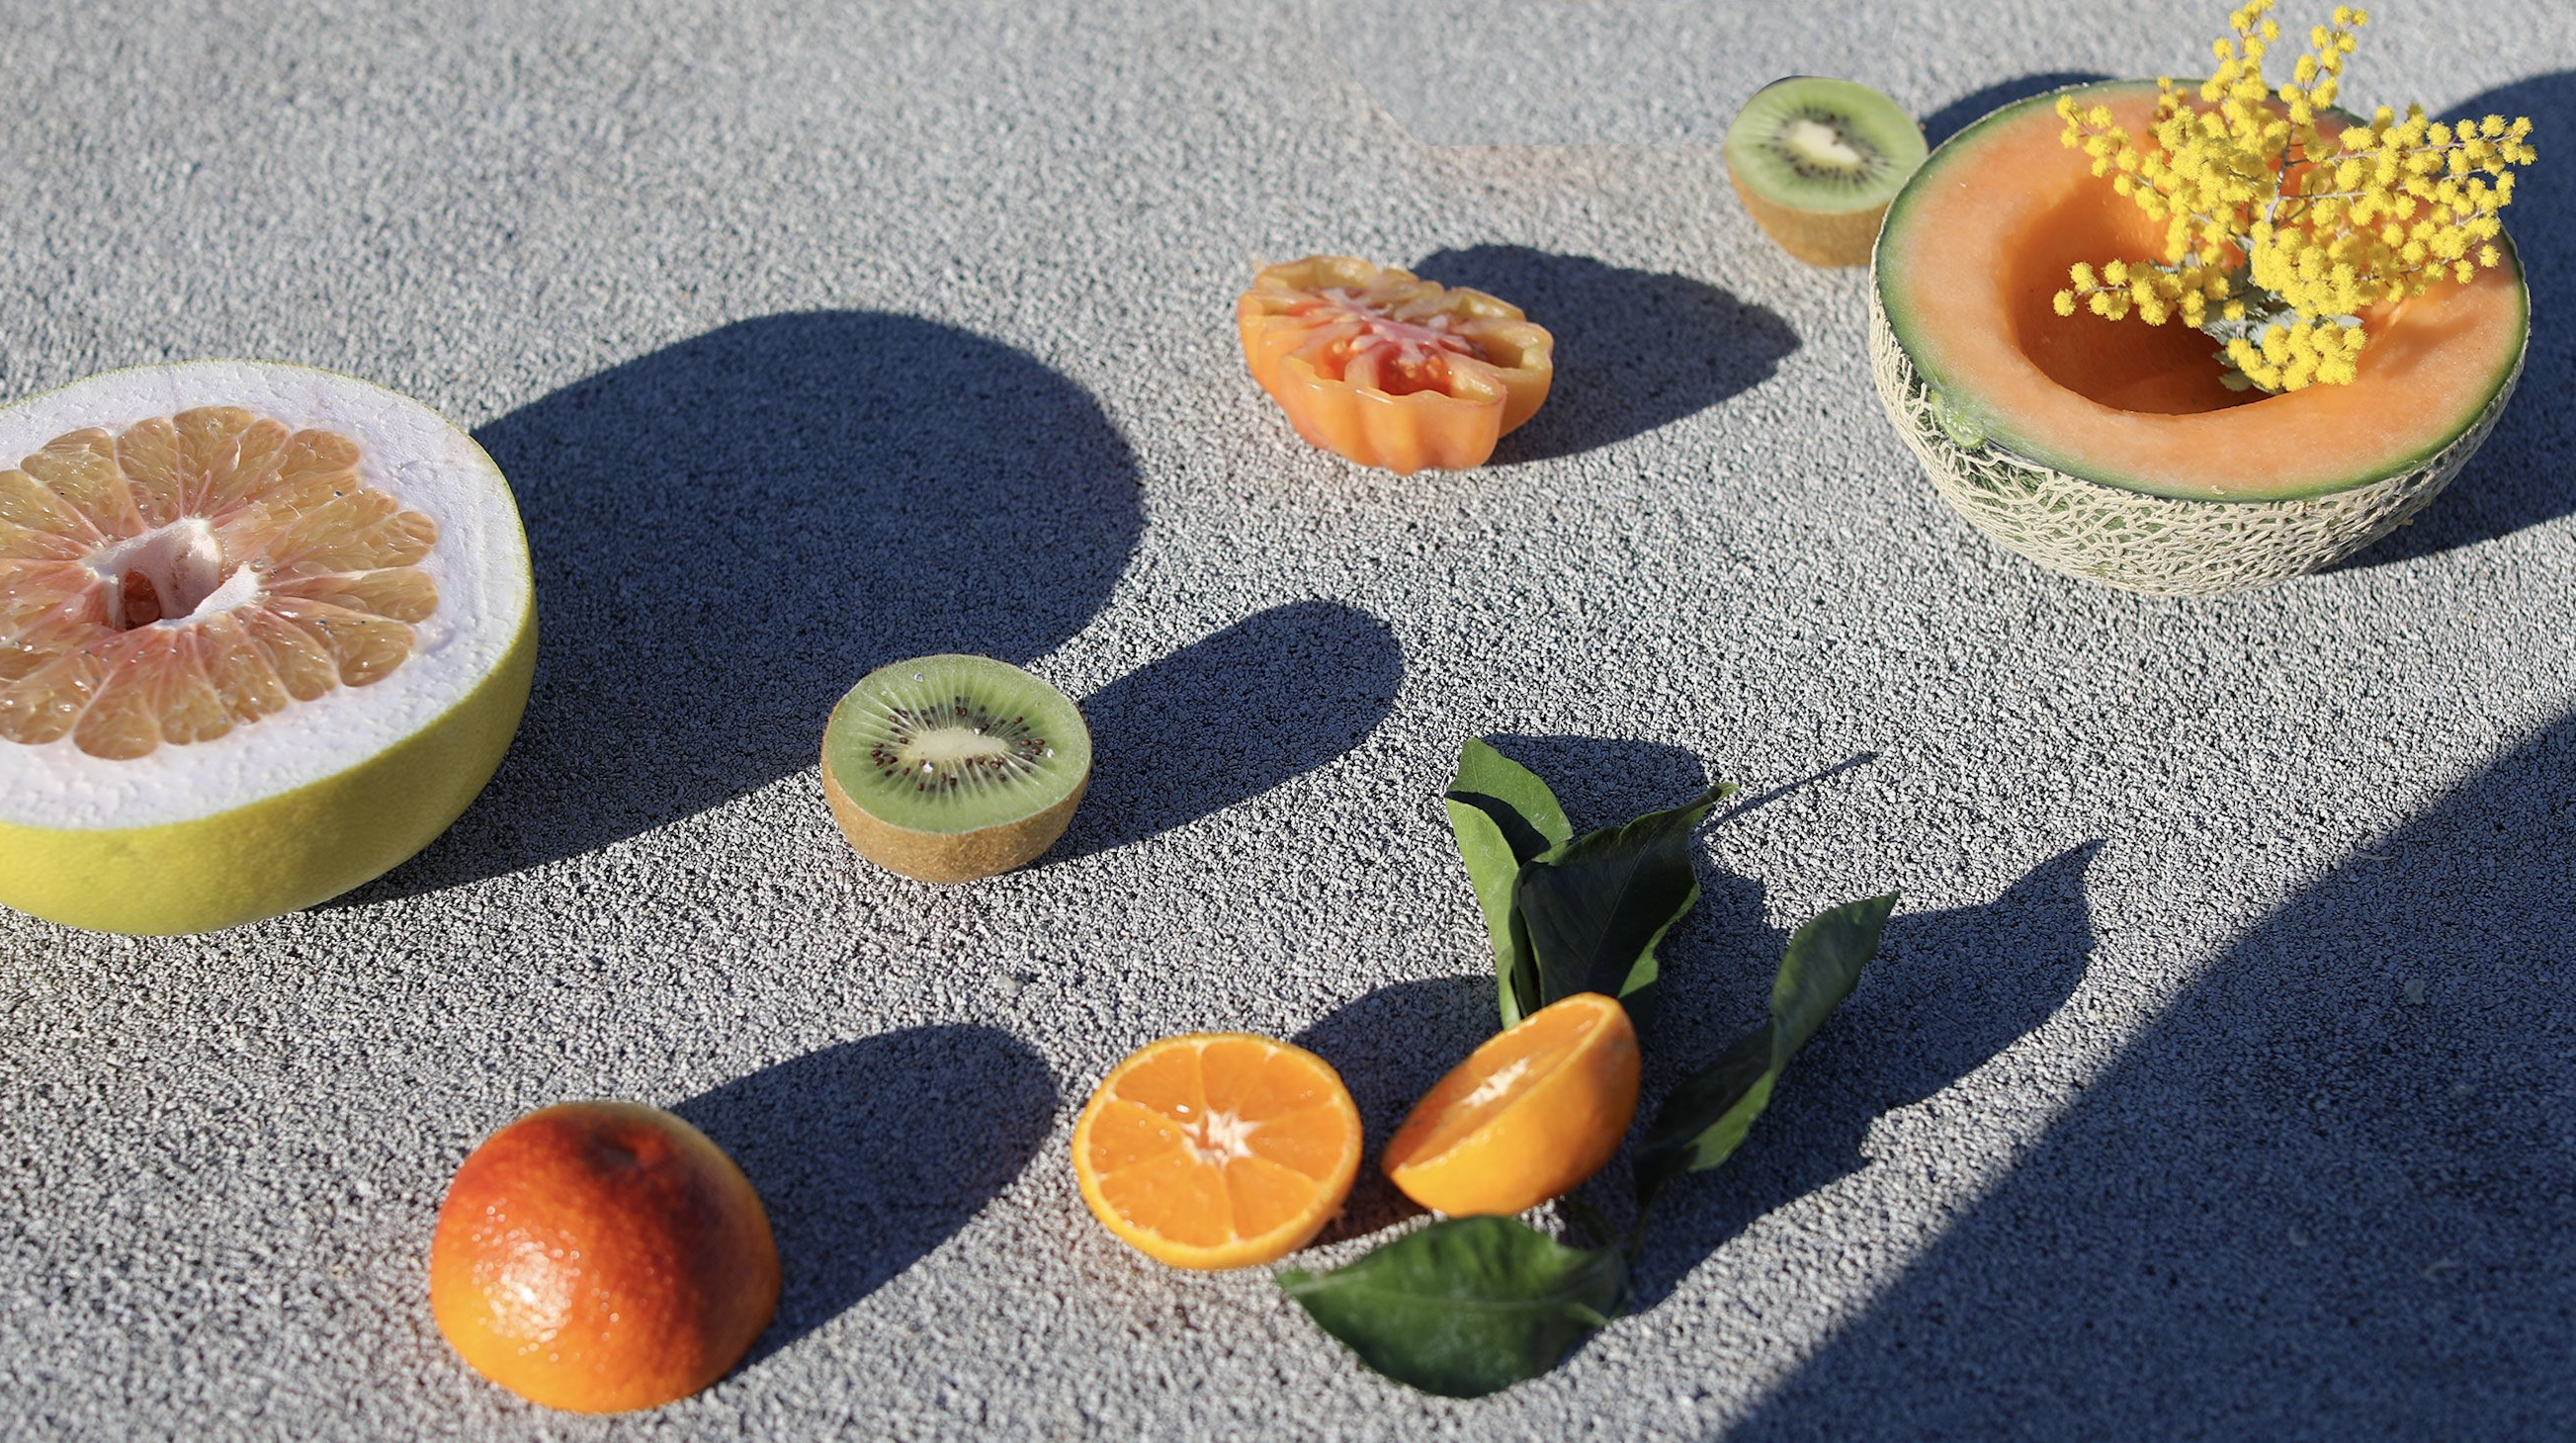 Fruit in the street